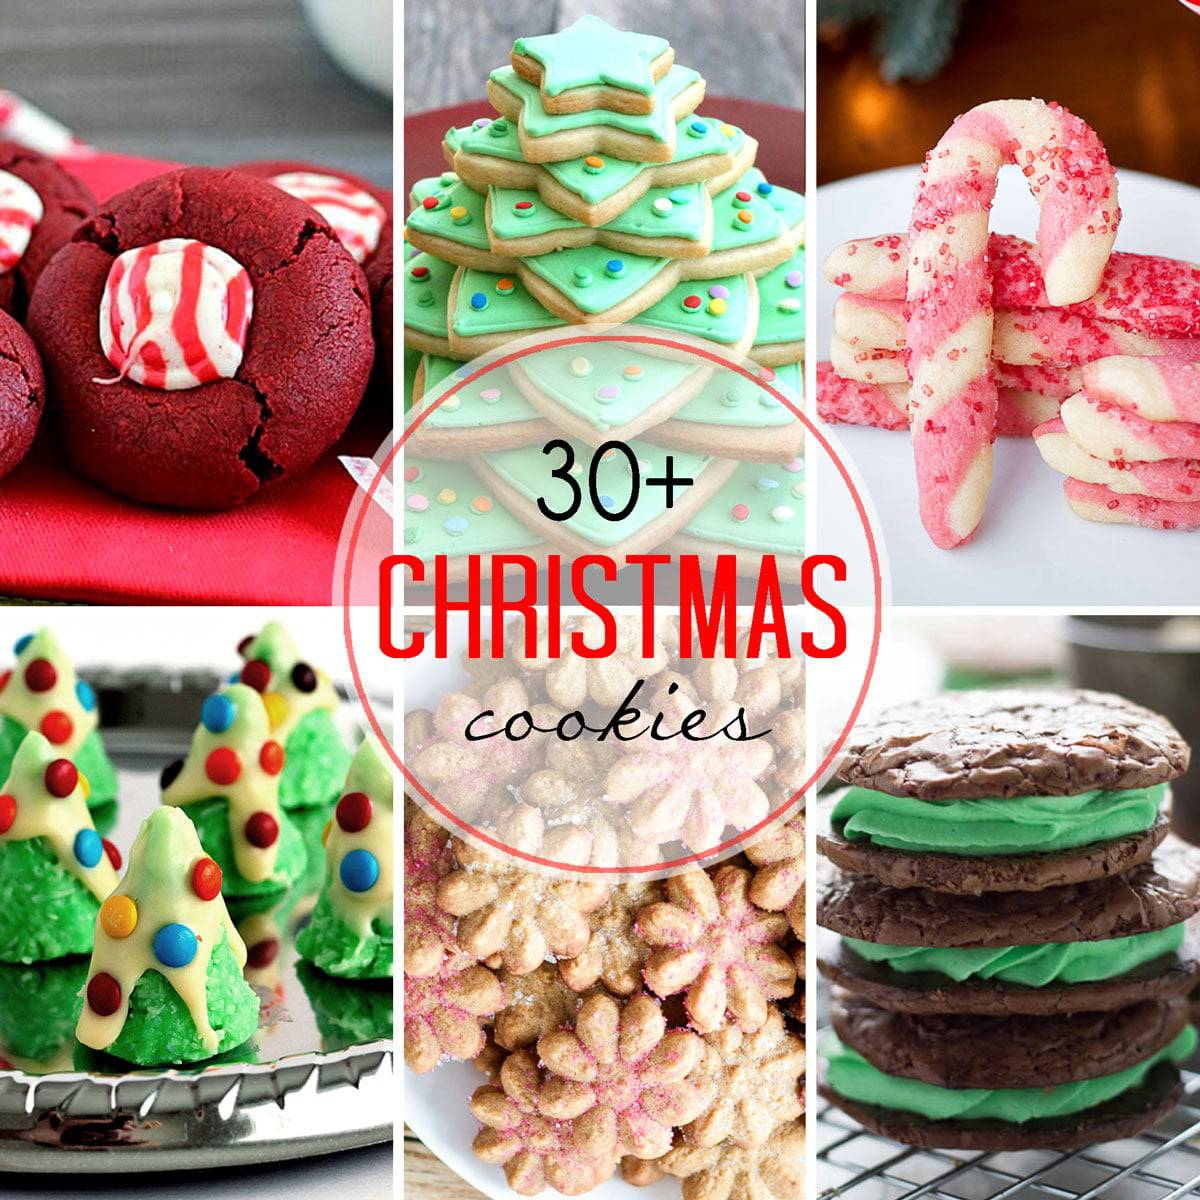 30 christmas cookie recipes for your cookie tray all you need for the season - Easy Christmas Cookie Recipes